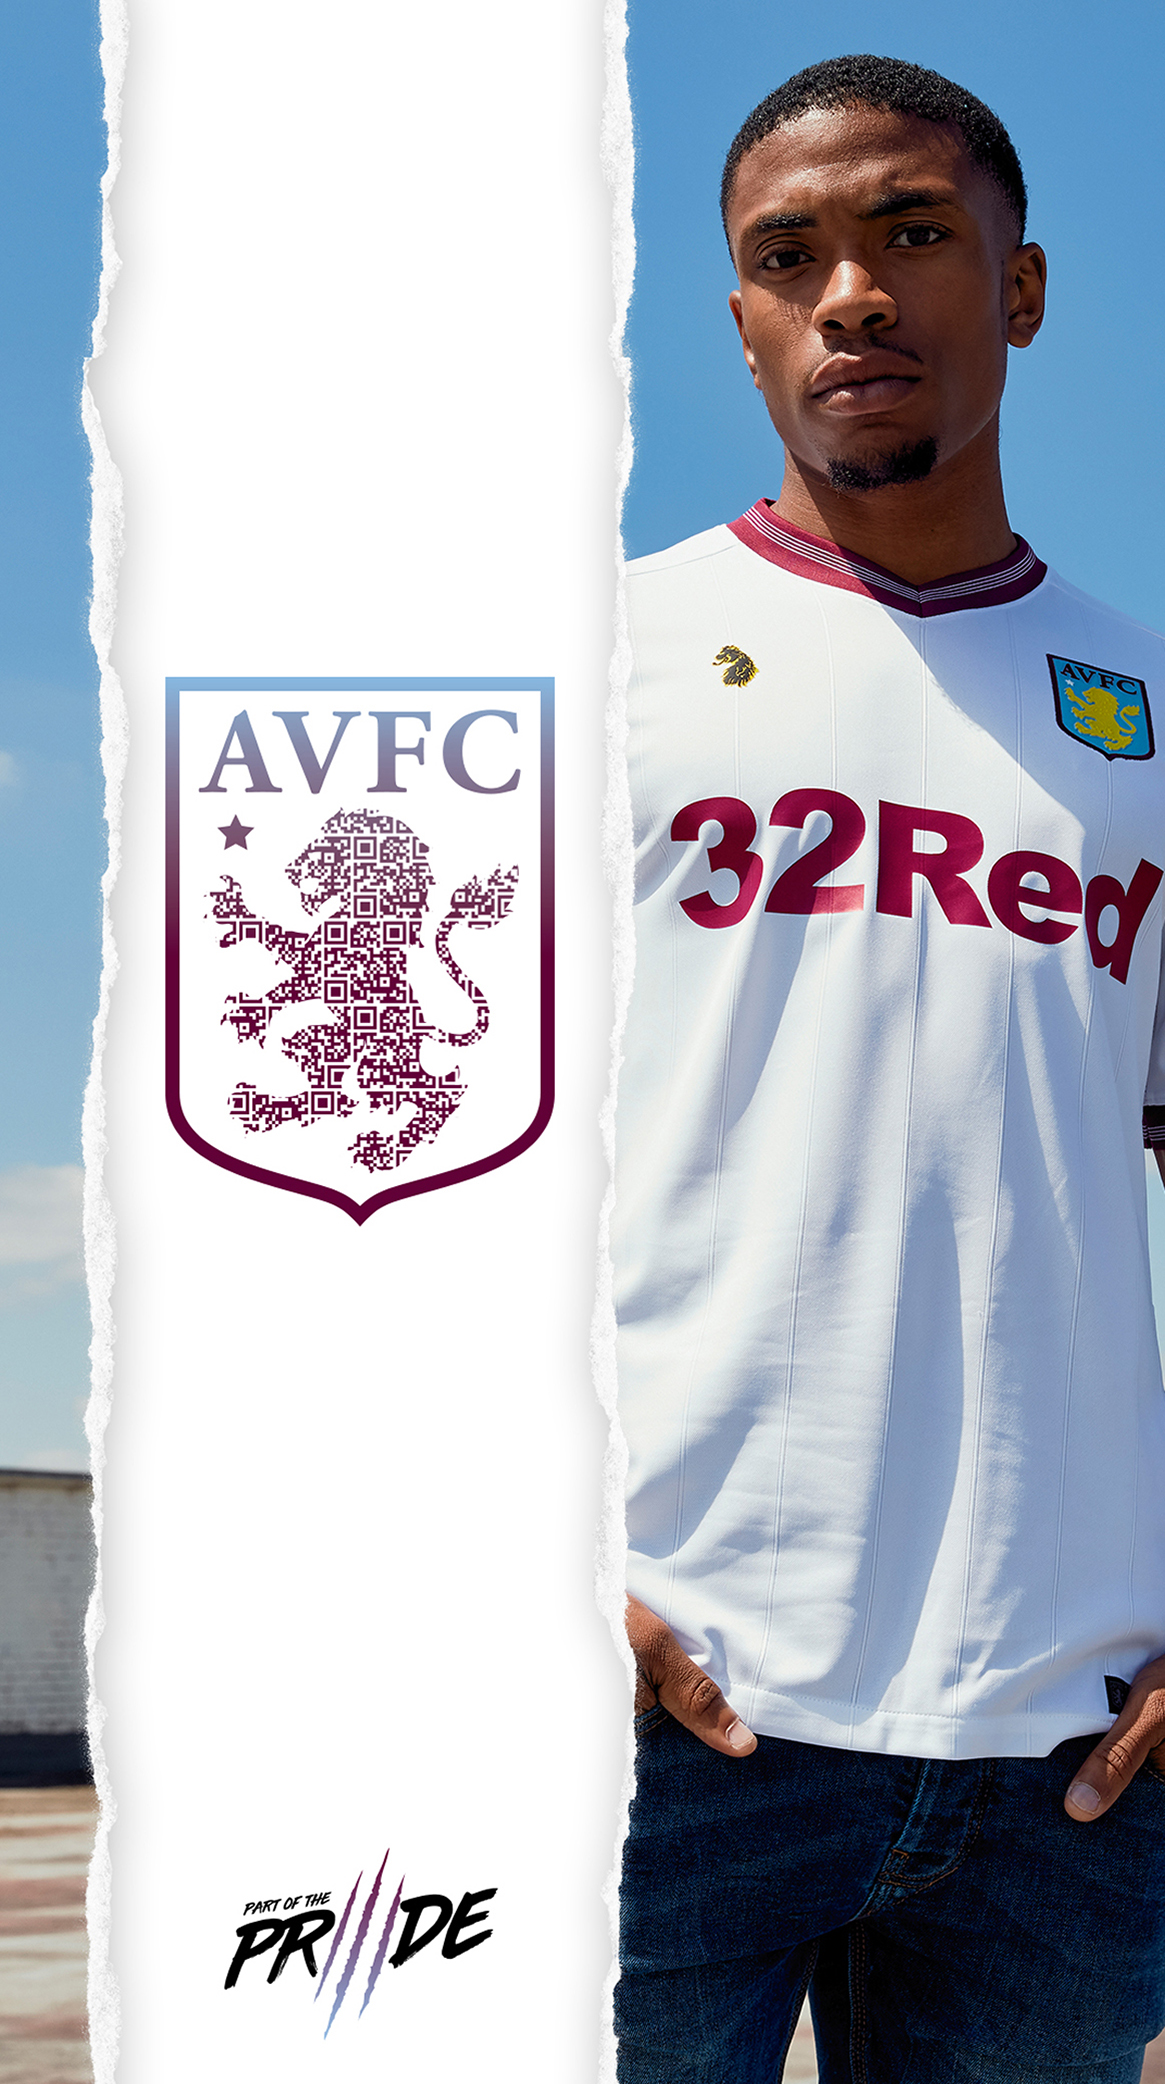 Aston Villa x Luke Sport 2018/19 Kit